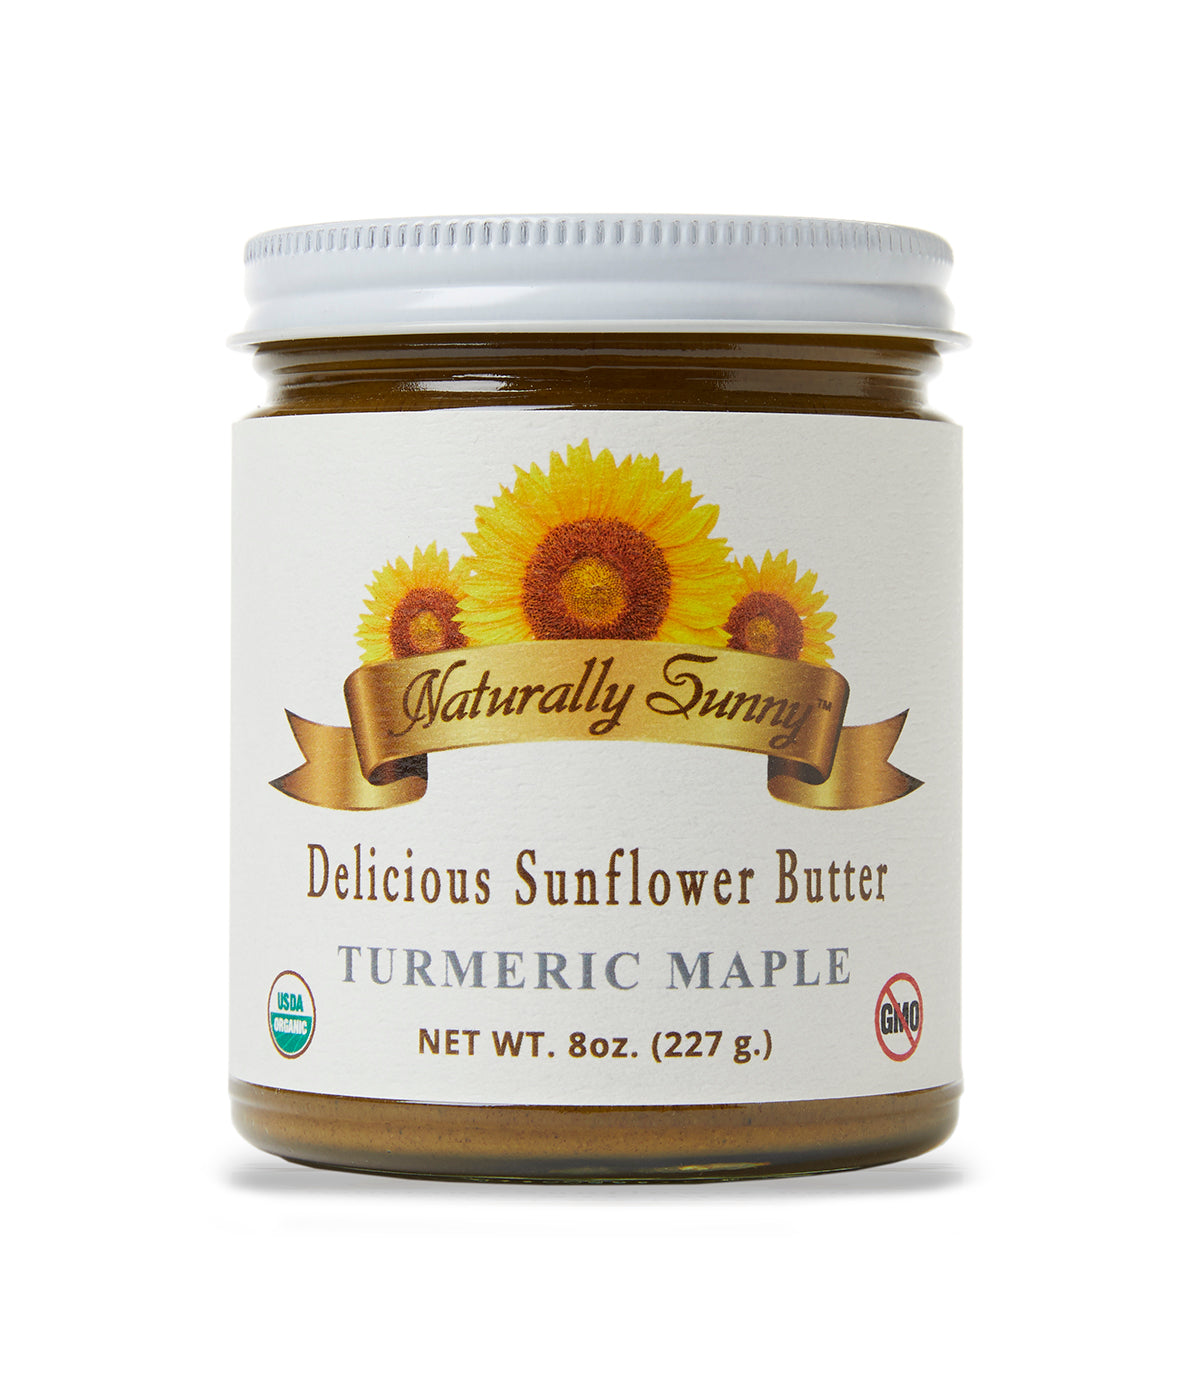 Naturally Sunny Sunflower Butter - Turmeric Maple, 8 Ounce Jar - Snazzy Gourmet